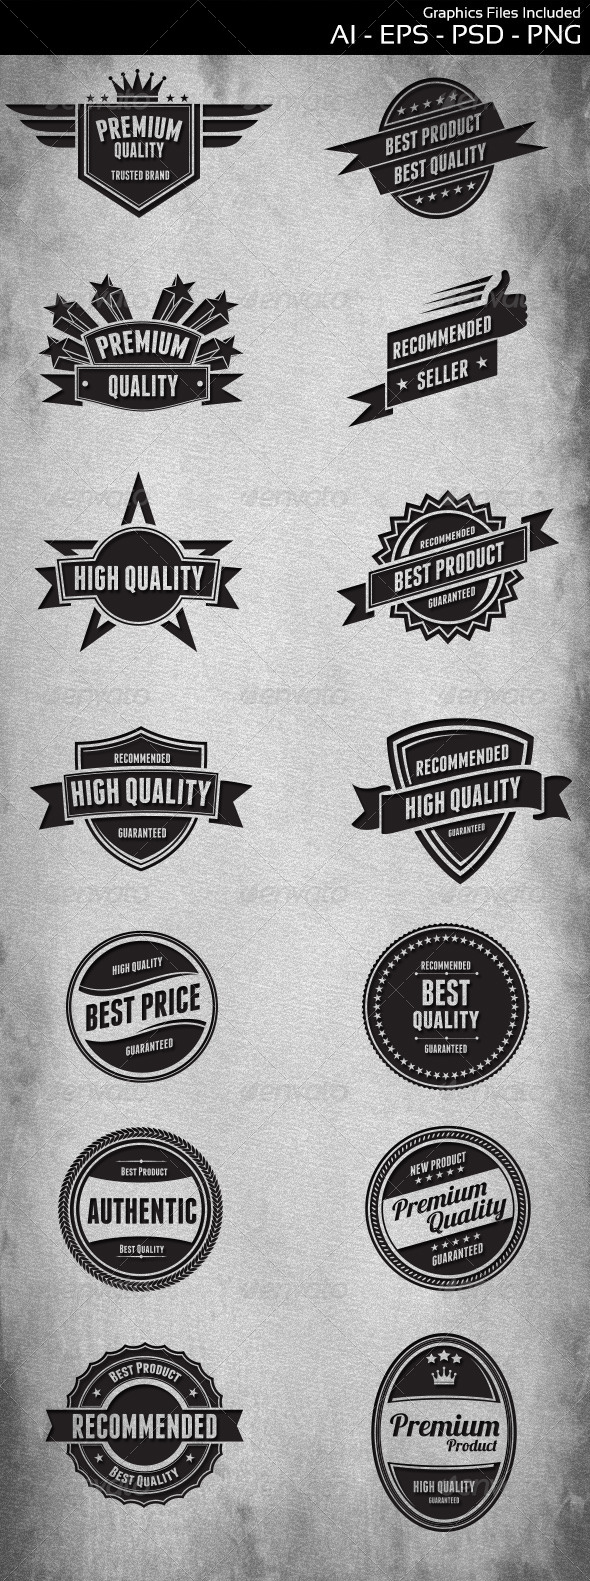 GraphicRiver Badges Design 5811619